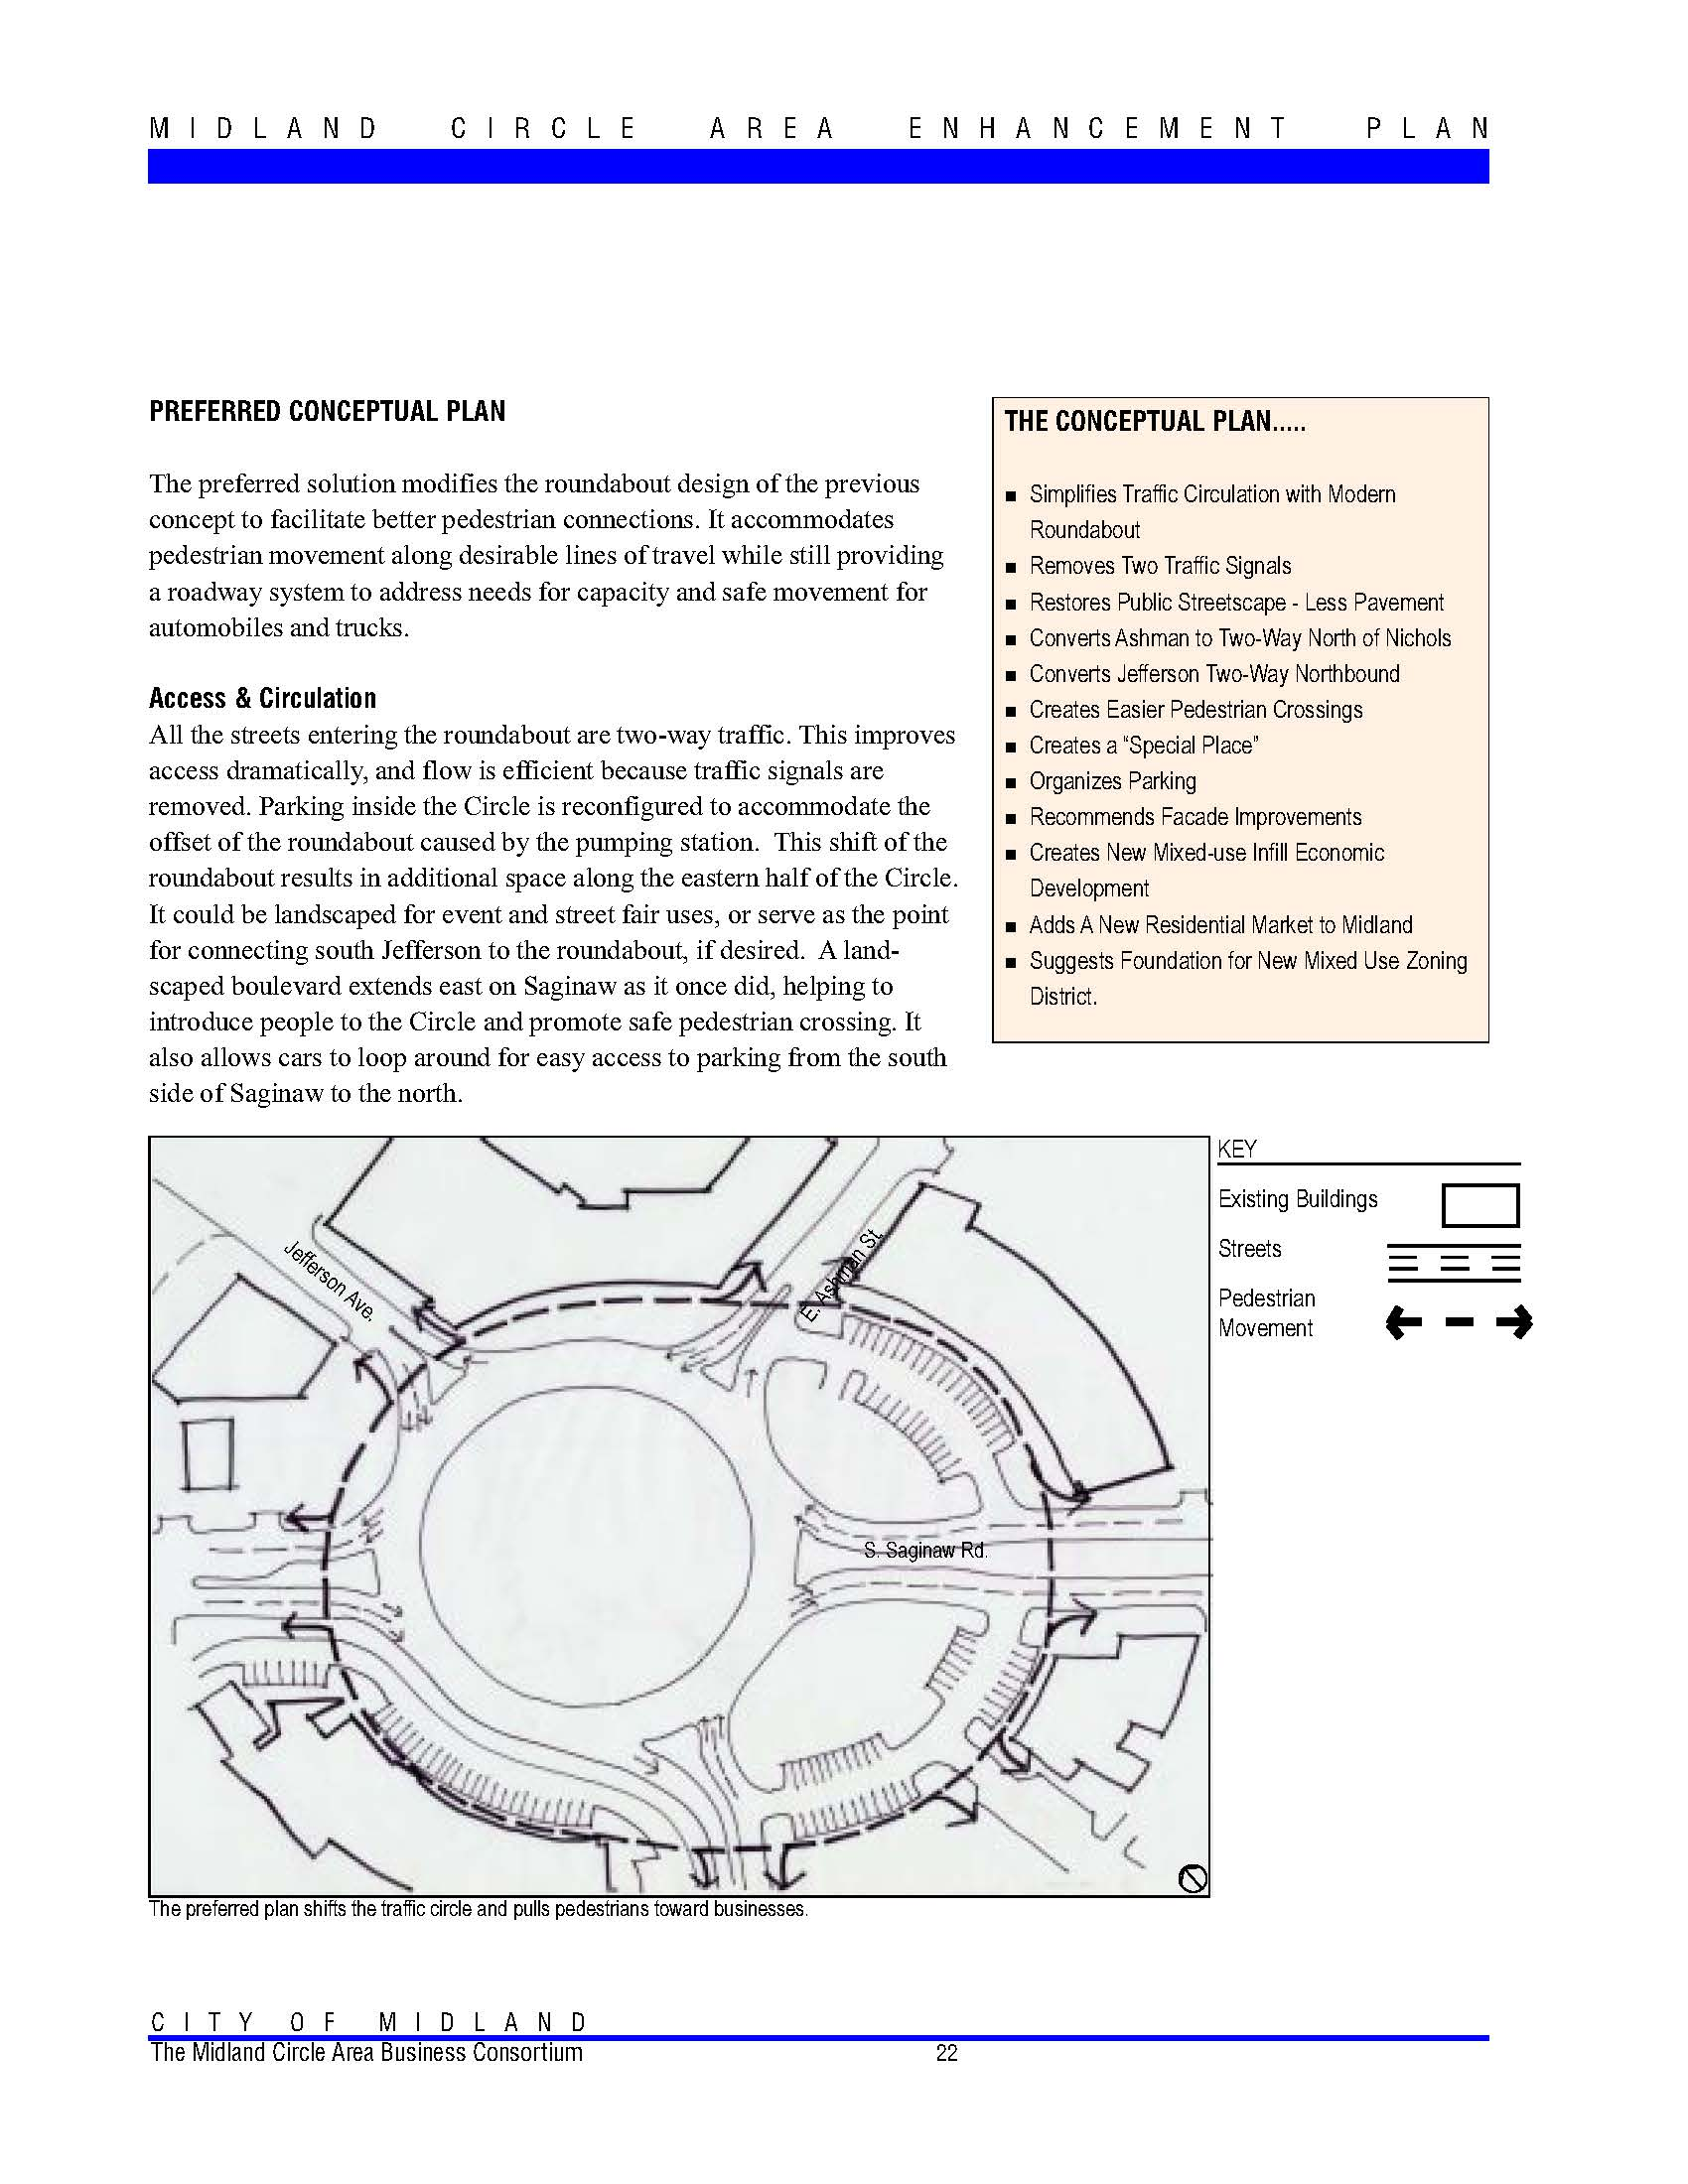 Ashman Circle Enhancement Plan_Page_24.jpg